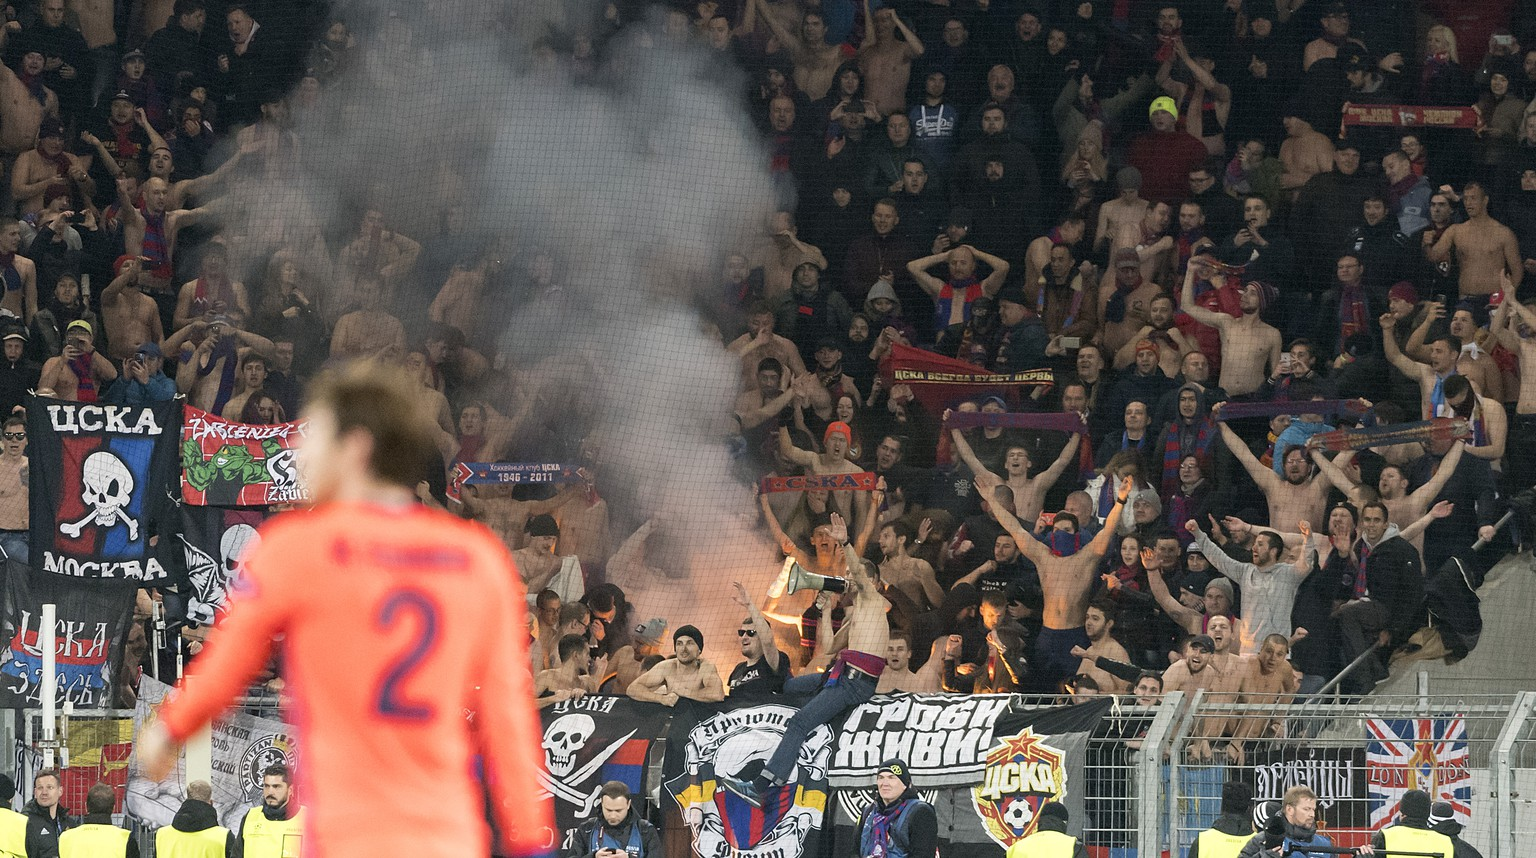 Moscow's fans cheer after the UEFA Champions League Group stage Group A matchday 4 soccer match between Switzerland's FC Basel 1893 and Russia's CSKA Moskva in the St. Jakob-Park stadium in Basel, Switzerland, on Tuesday, October 31, 2017. (KEYSTONE/Georgios Kefalas)